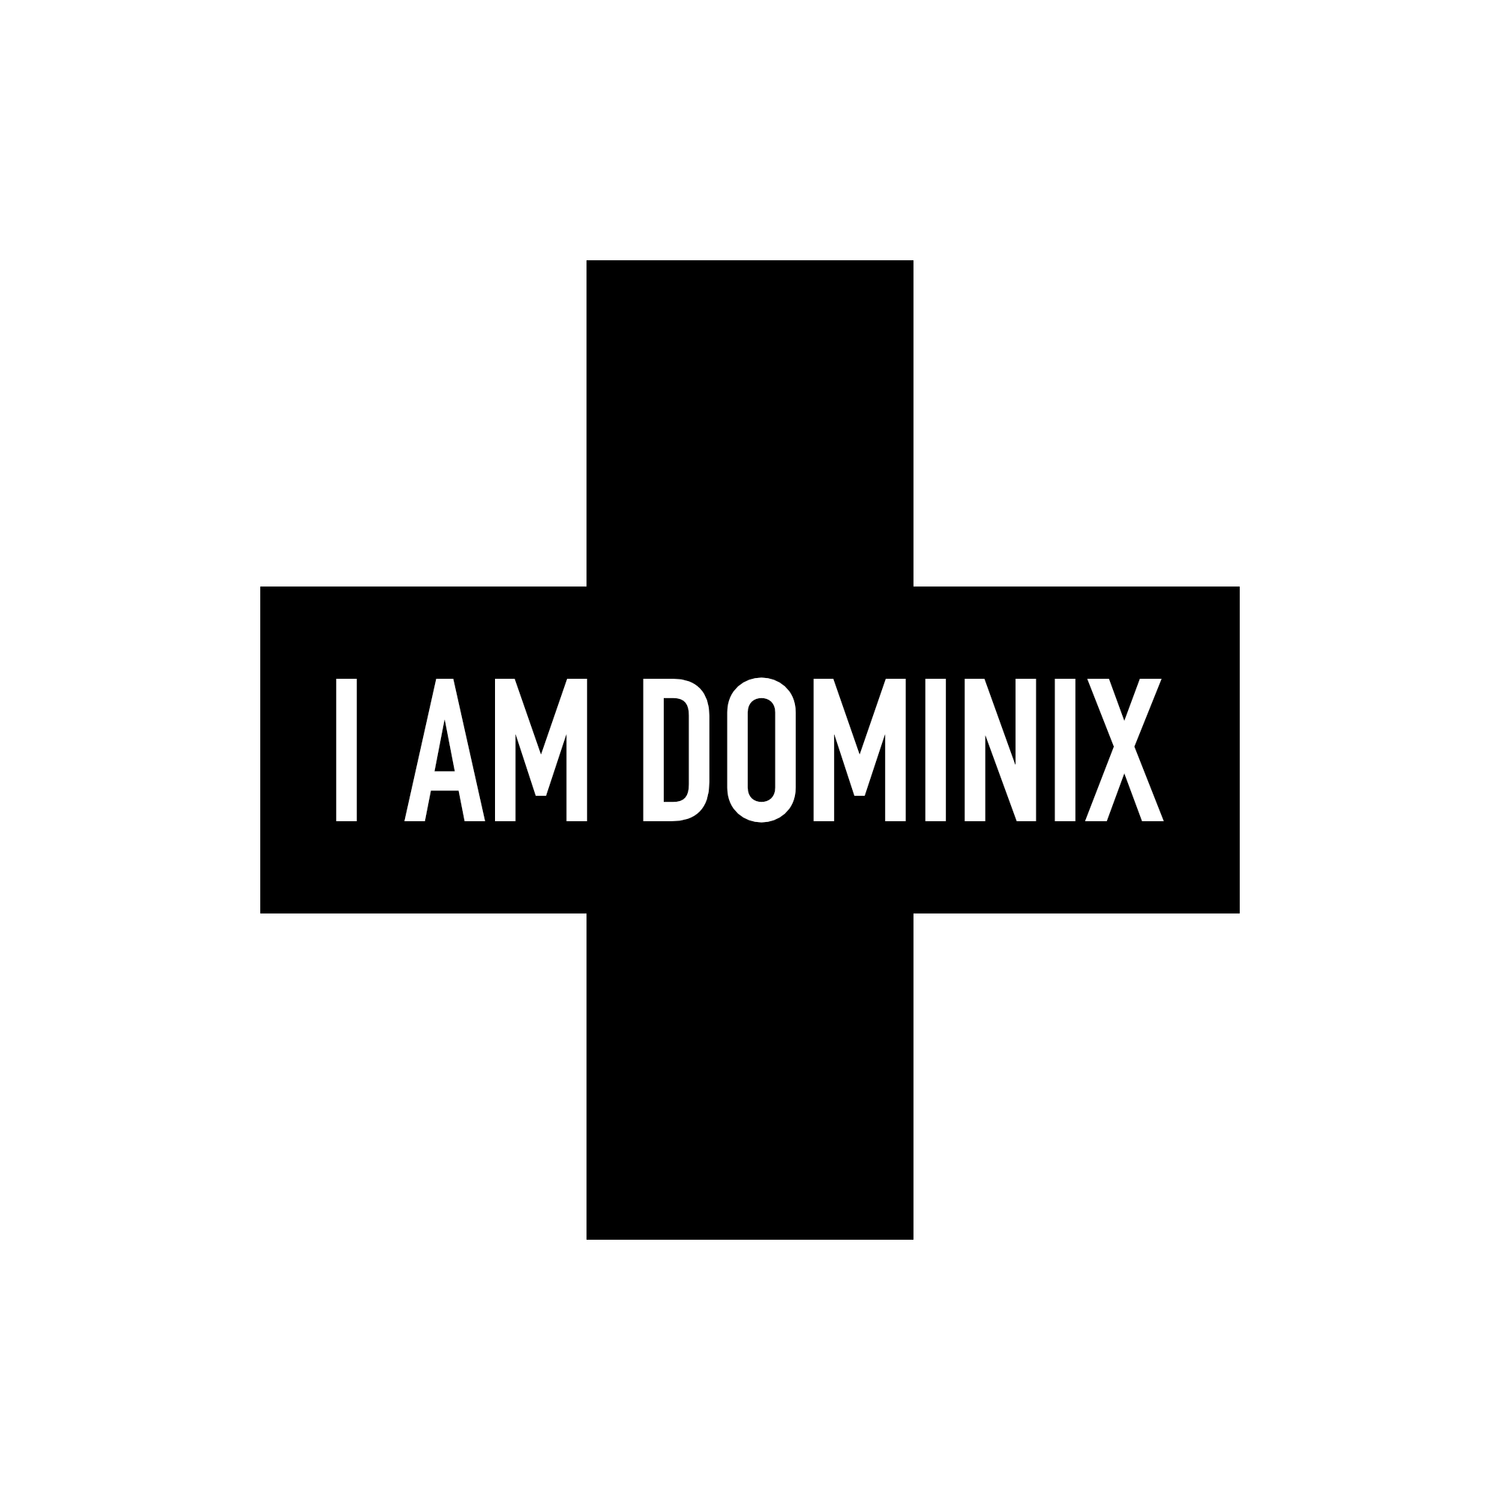 I AM DOMINIX